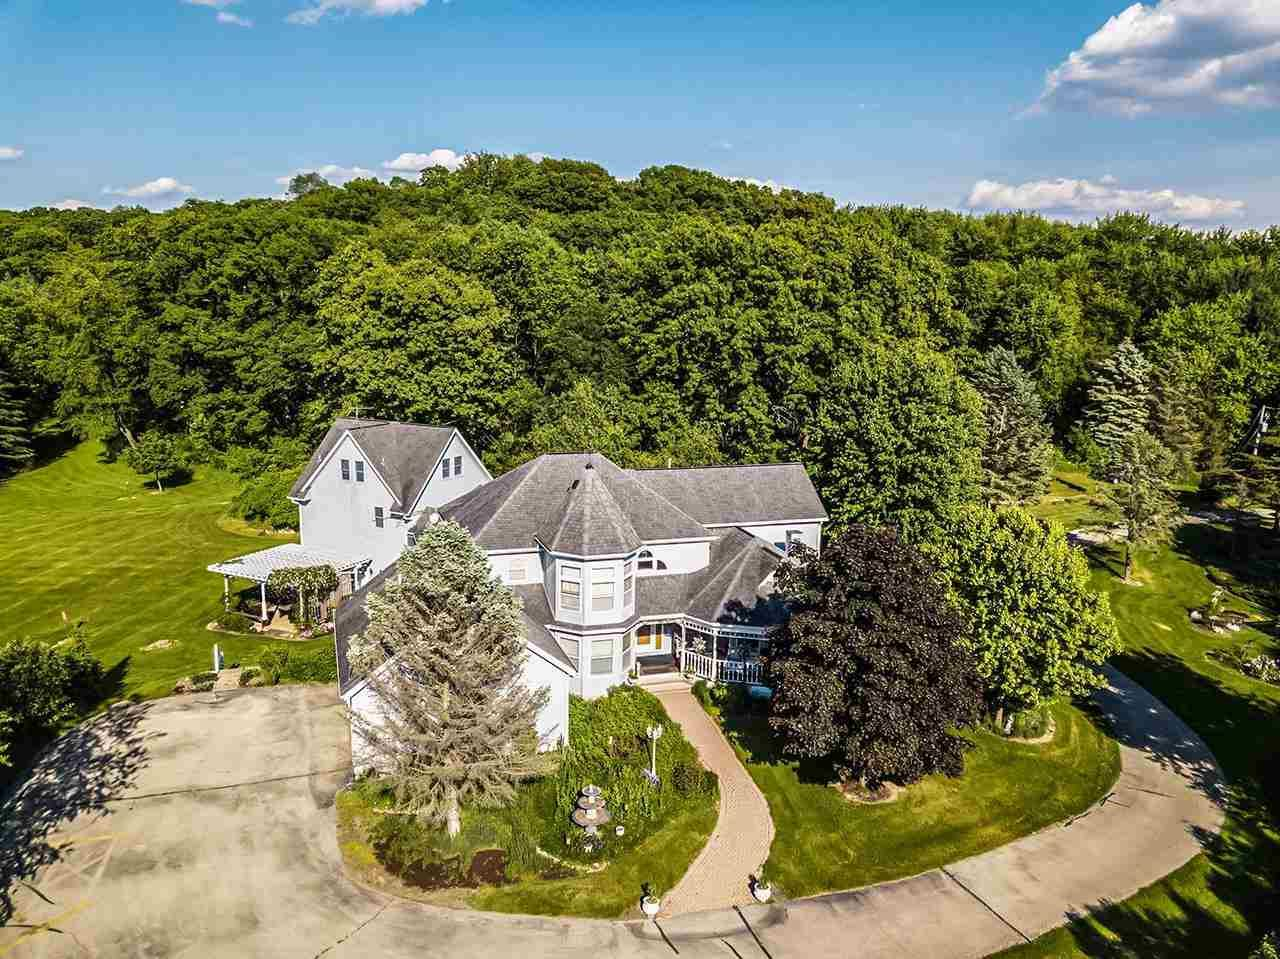 Photo for 1090 Severson Rd, Belleville, WI 53508 (MLS # 1911688)